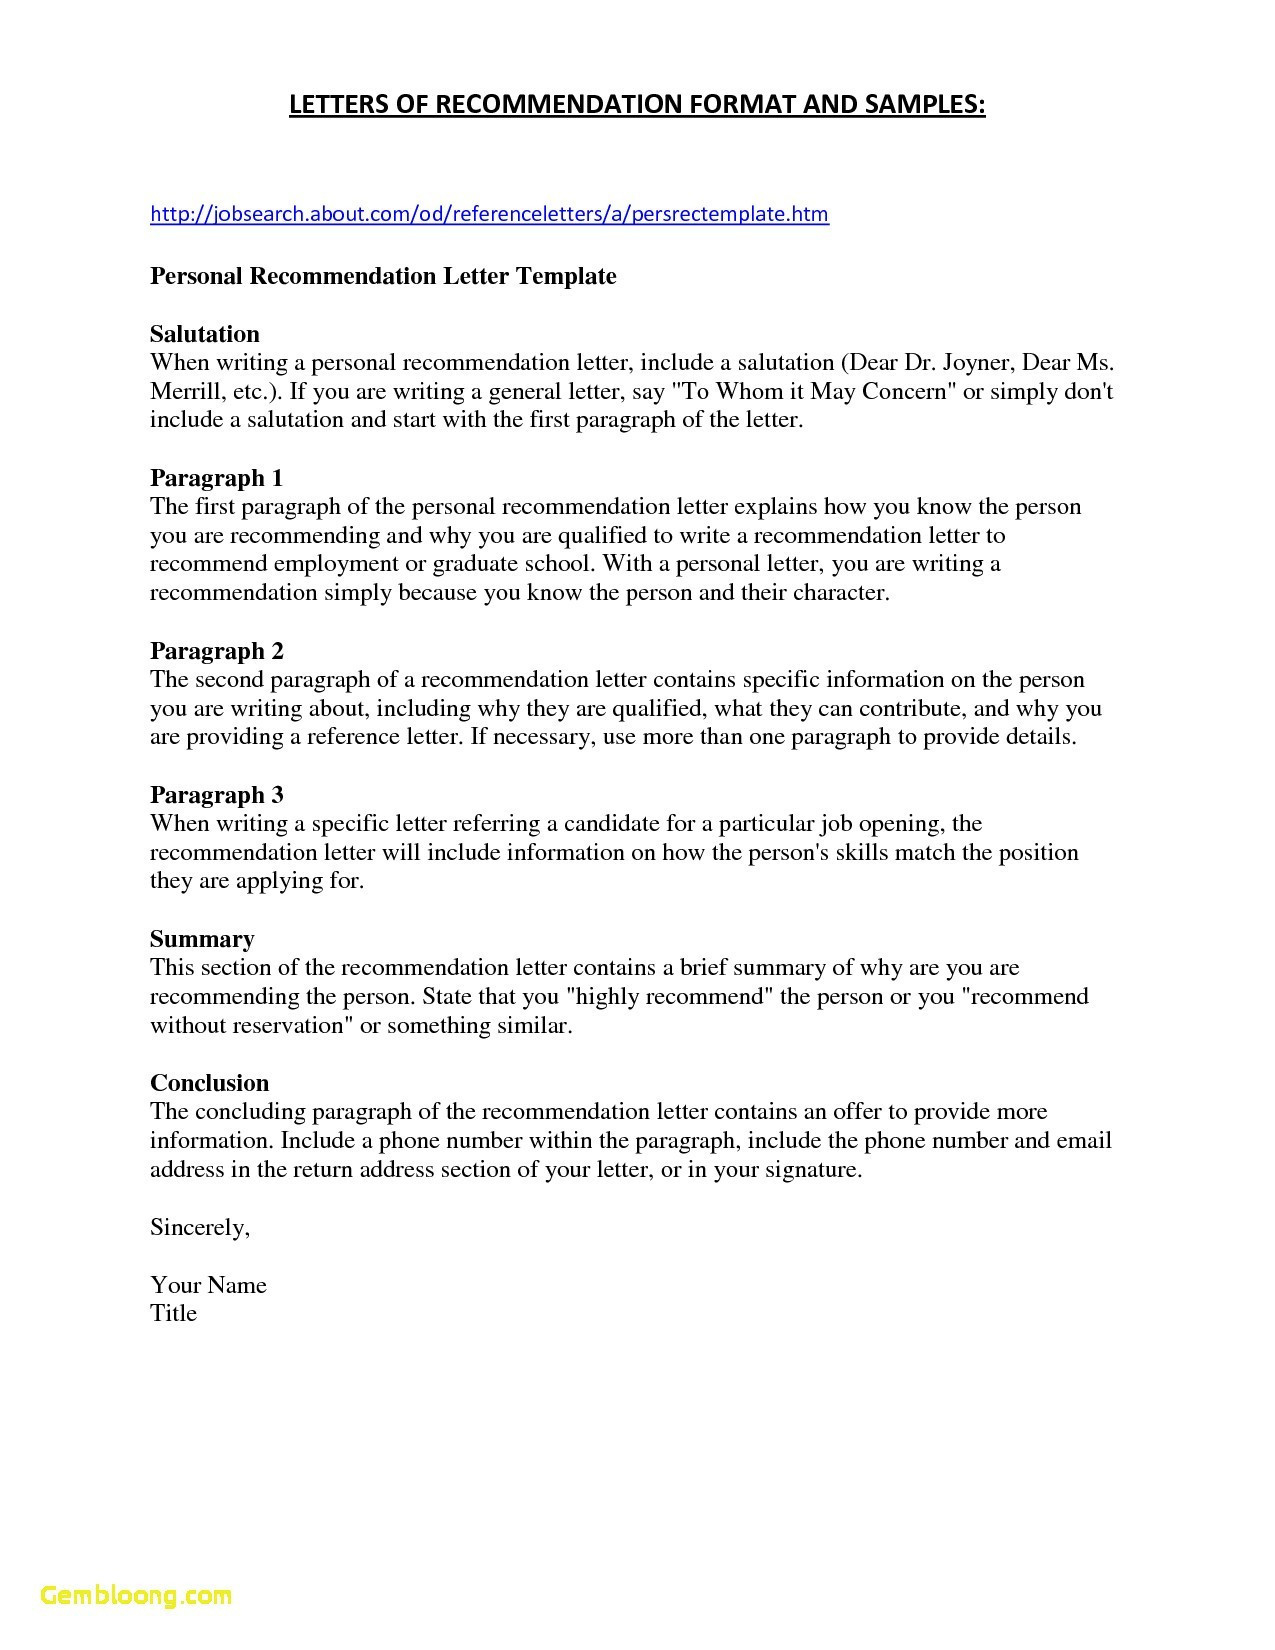 writing your own letter of recommendation template example-Writing Your Own Letter Re mendation Template Free Creative New Writing Job Re Mendation Letter 4-k